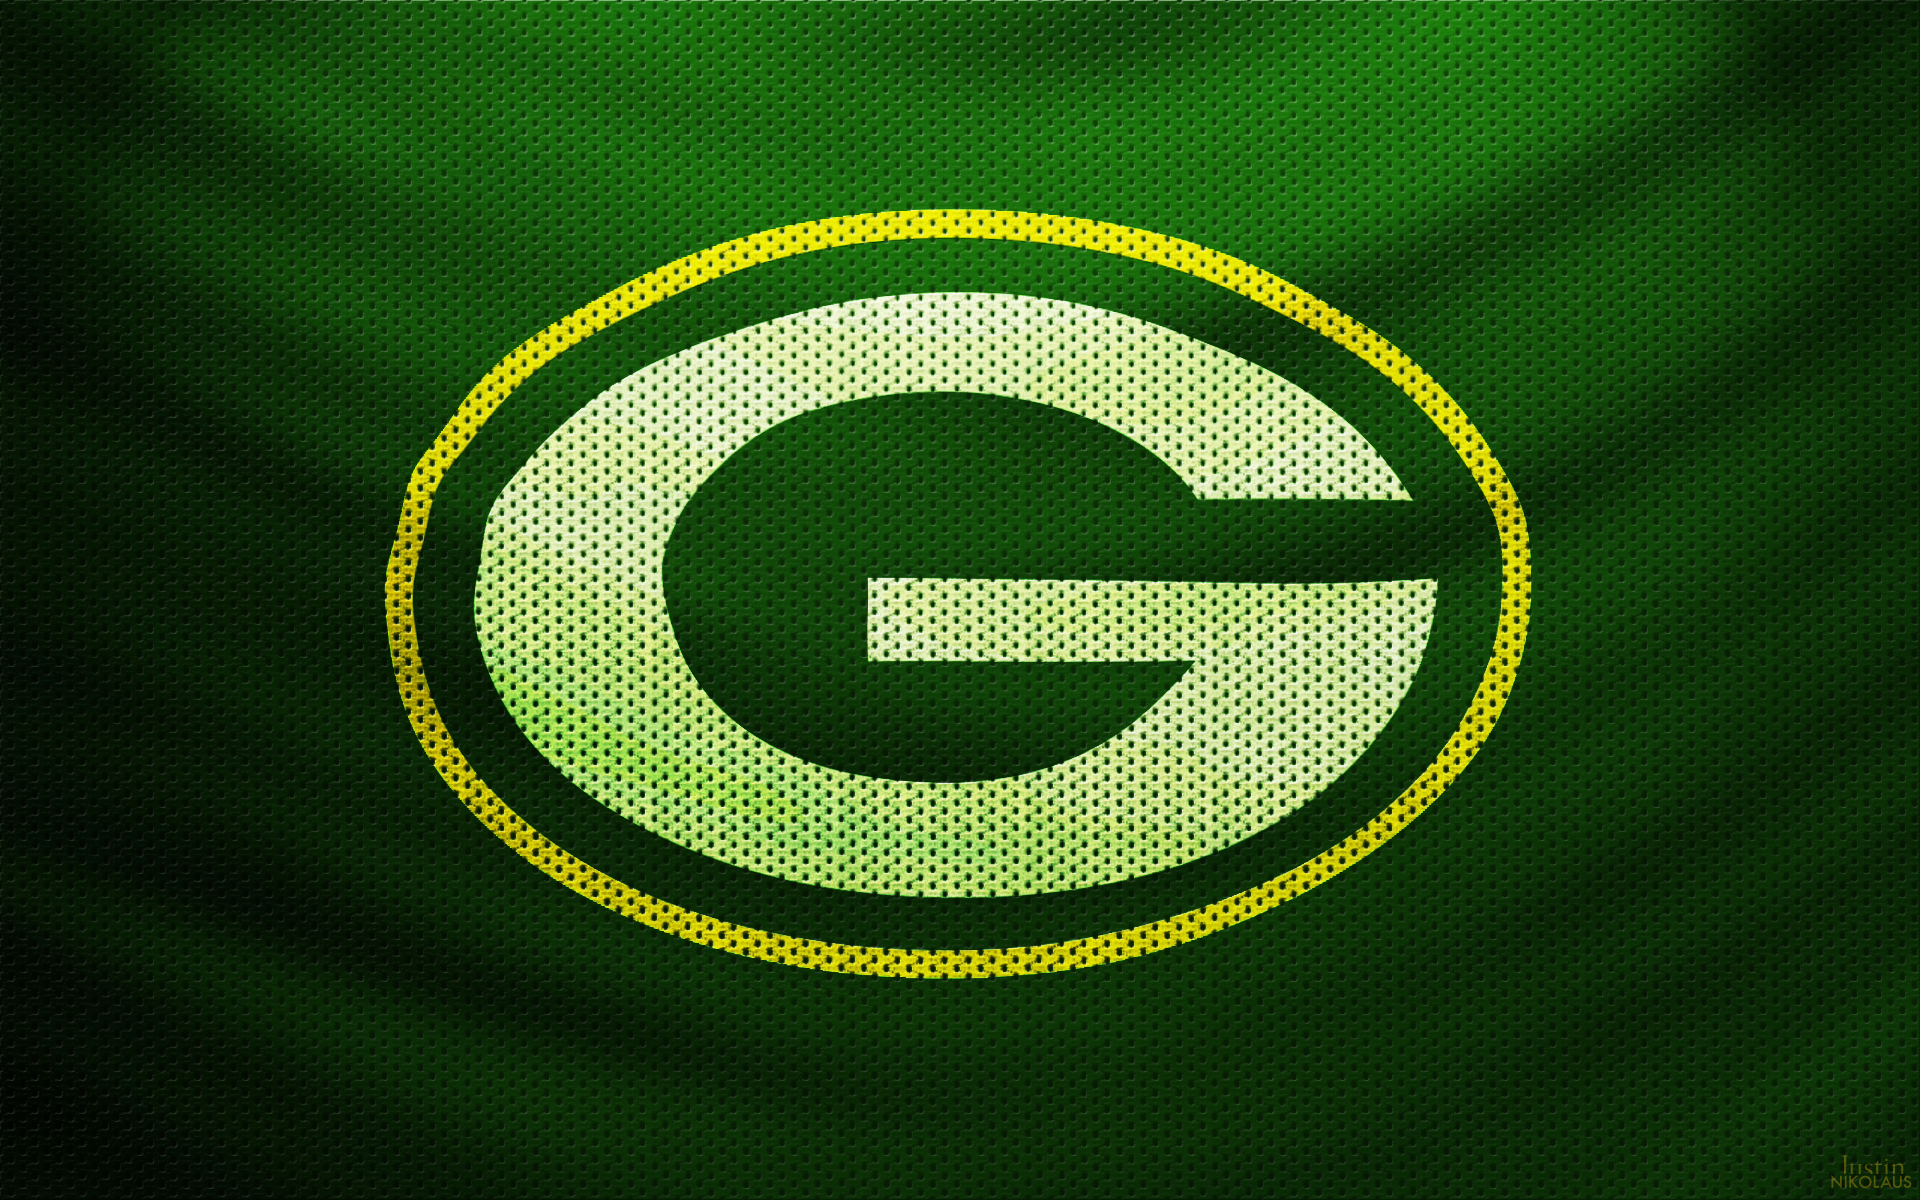 Green Bay Packers HD images